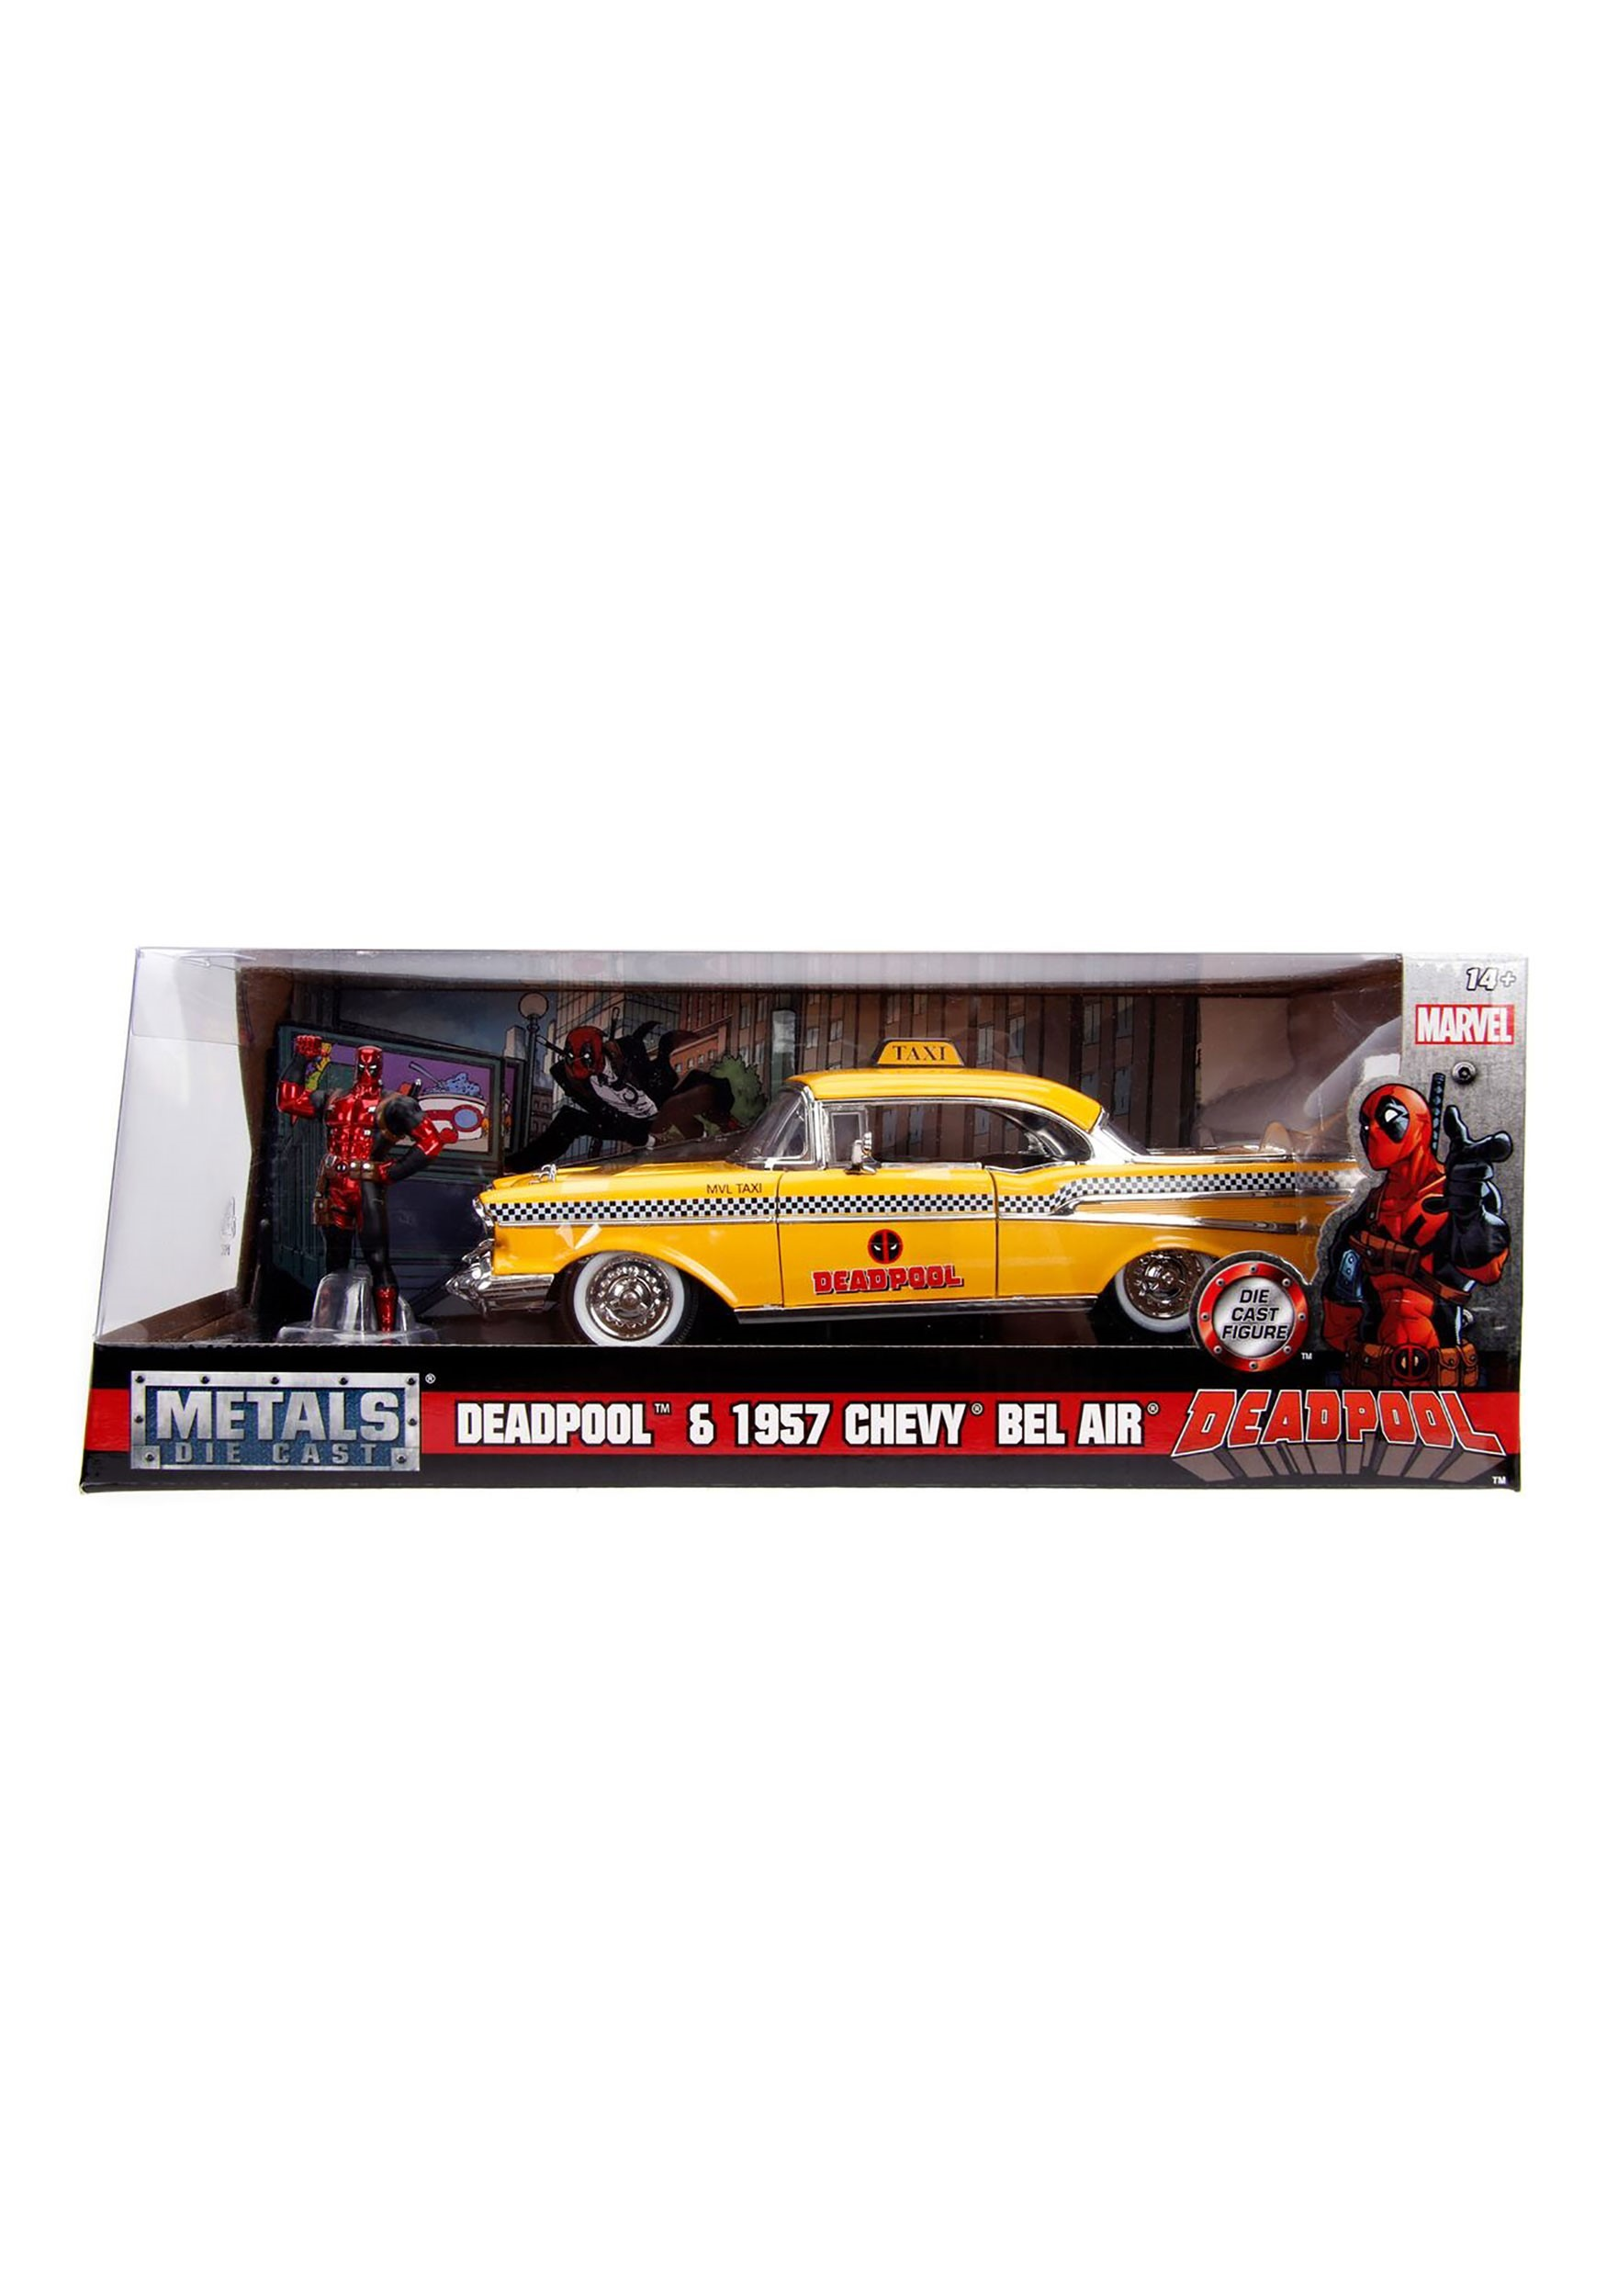 1:24 Deadpool Taxi Vehicle with Figure